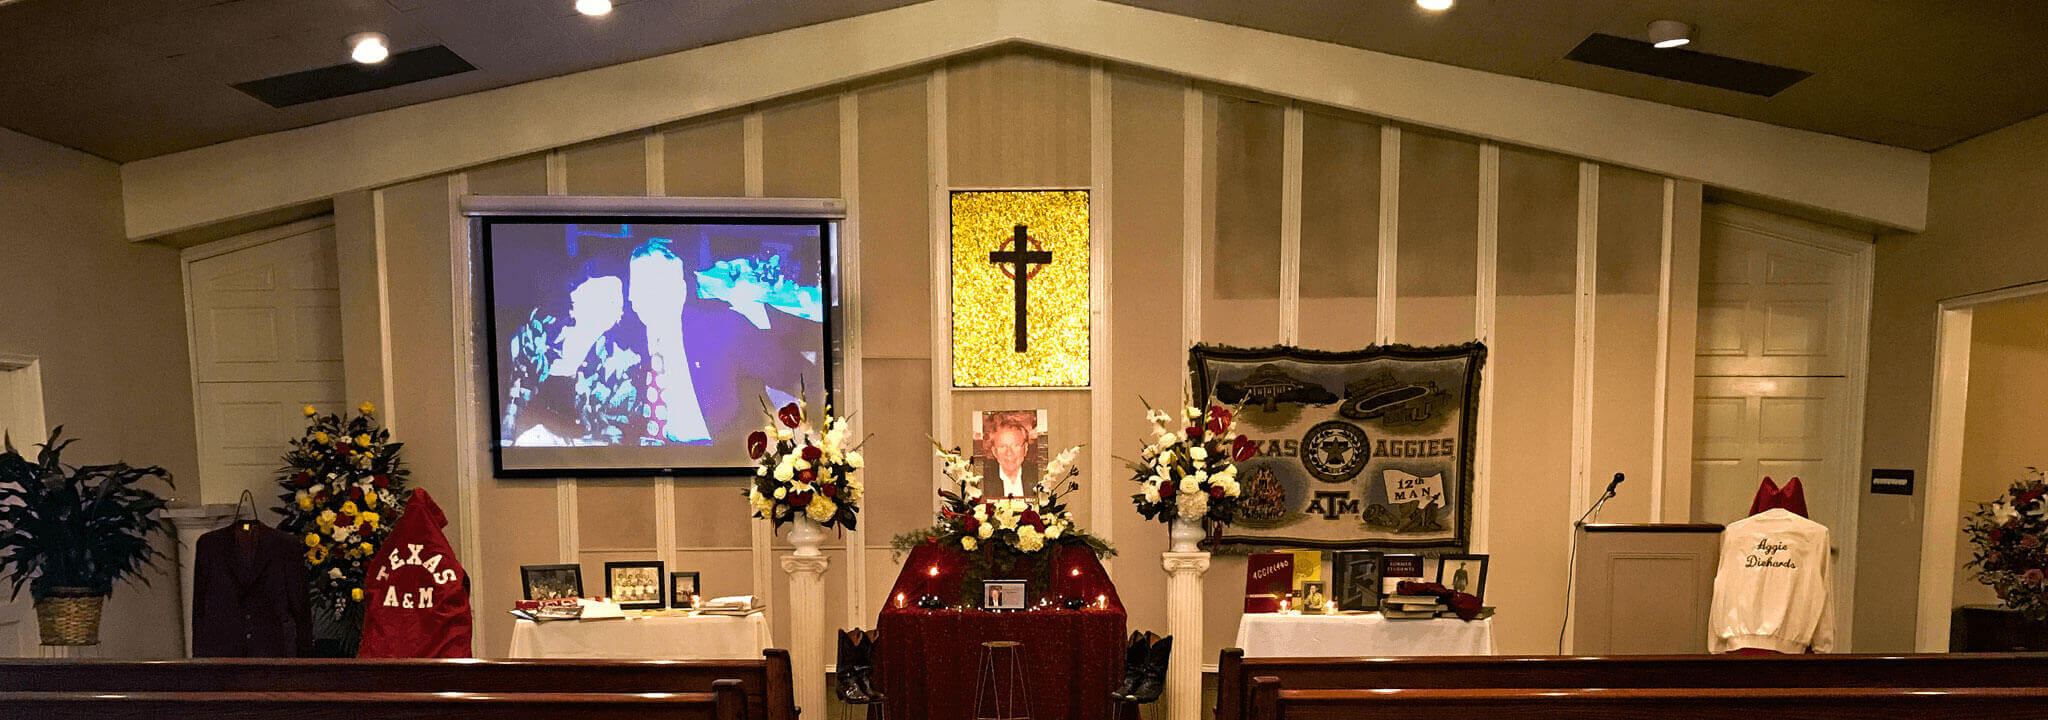 Dallas TX Funeral Home And Cremations